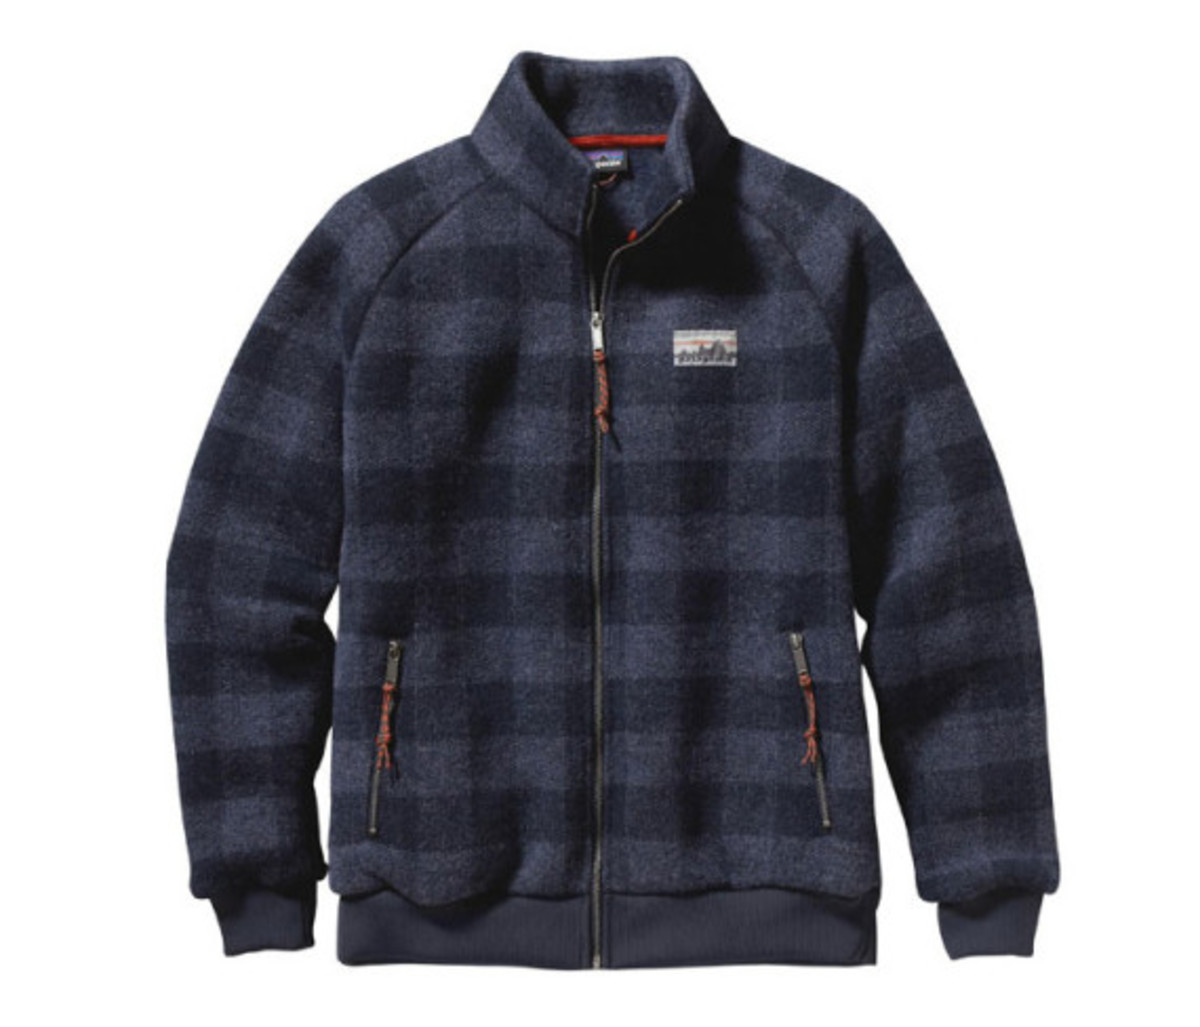 patagonia-truth-to-materials-collection-11